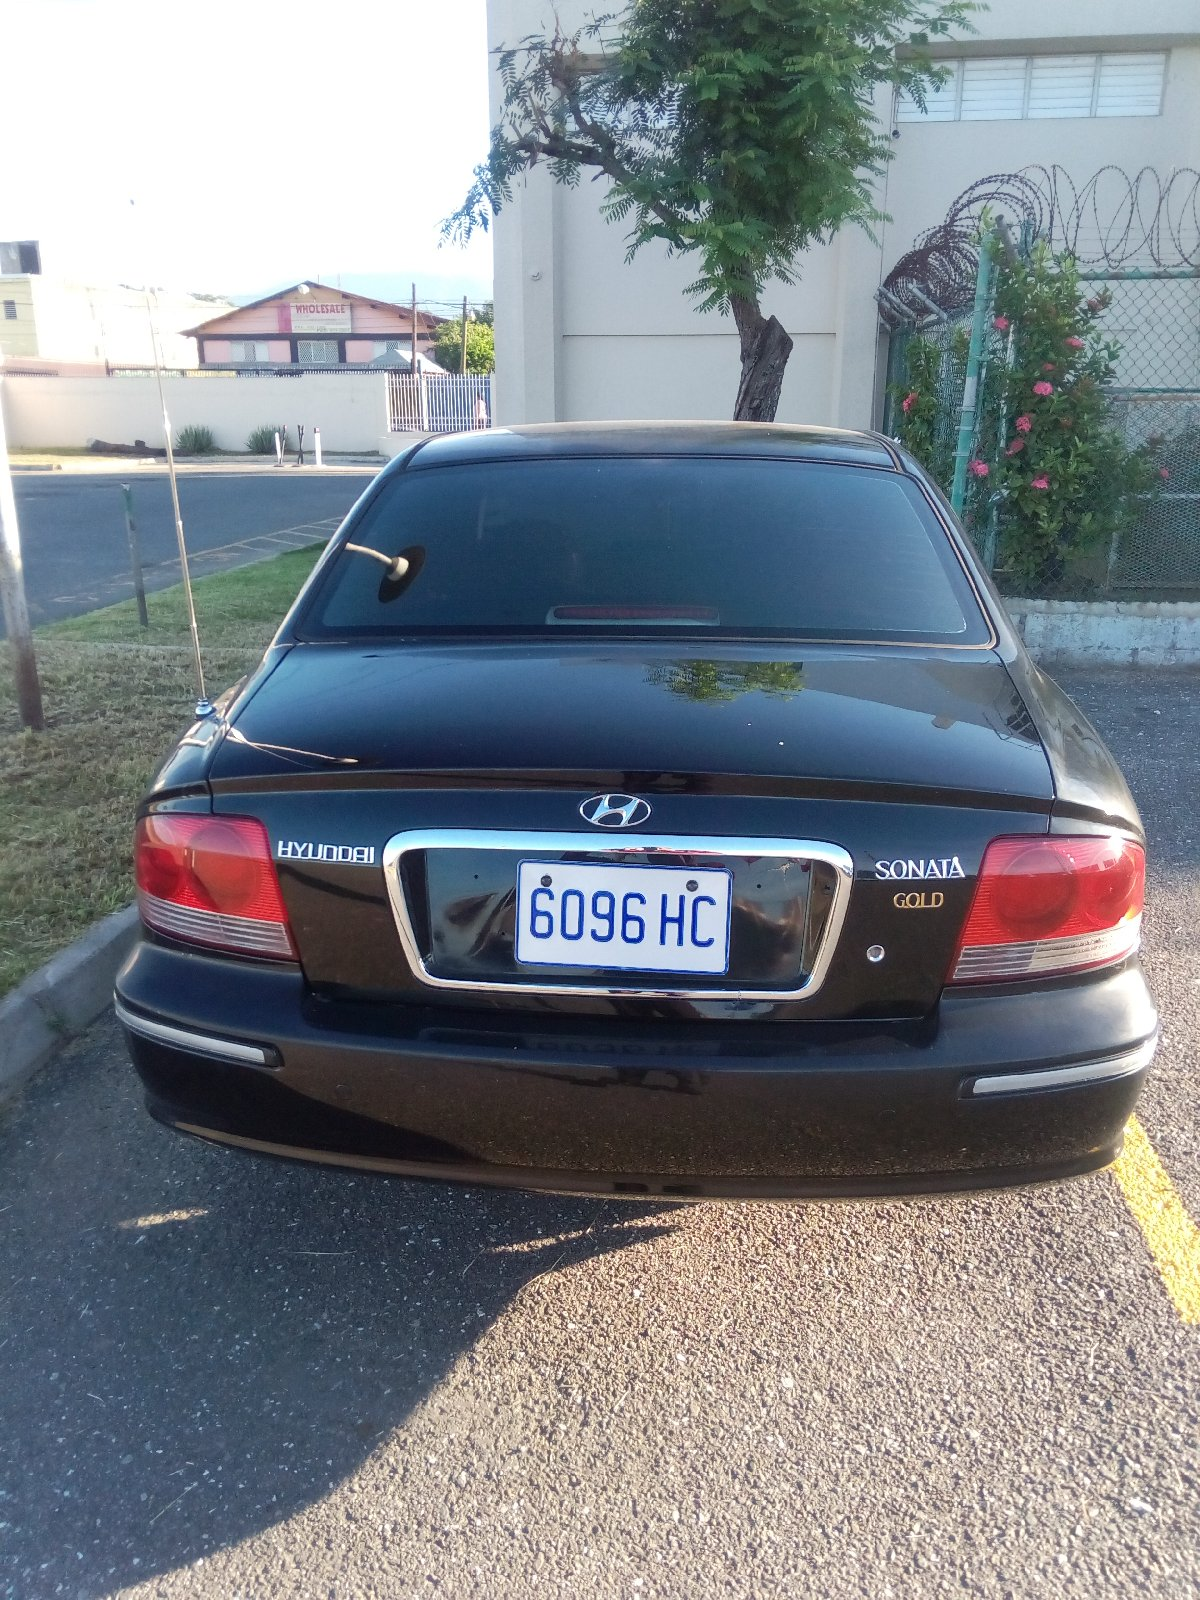 2005 hyundai sonata gold for sale in el prado verde st catherine cars. Black Bedroom Furniture Sets. Home Design Ideas